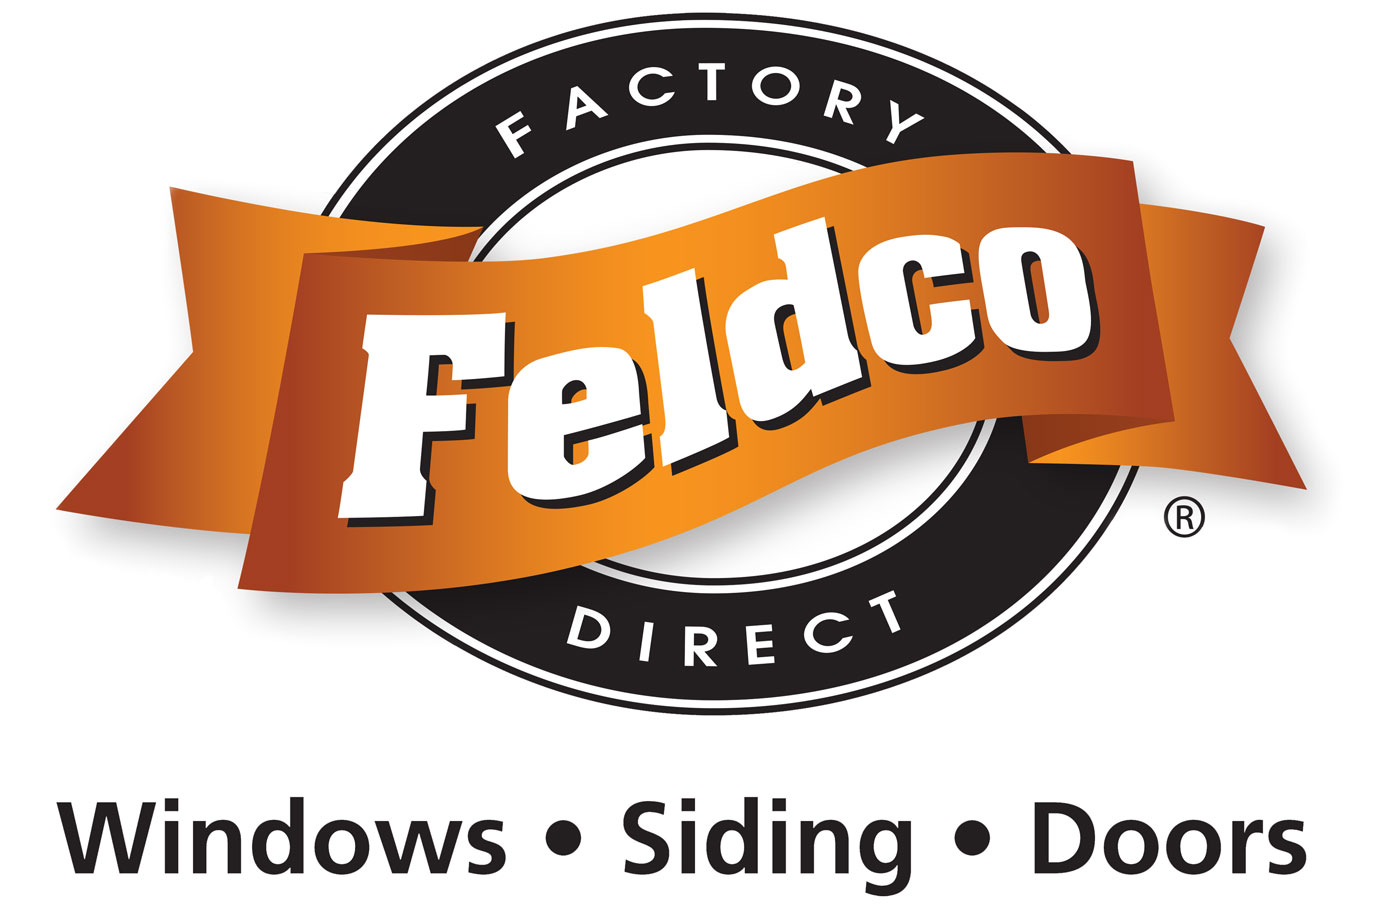 Feldco Windows, Siding and Doors opening Springfield location